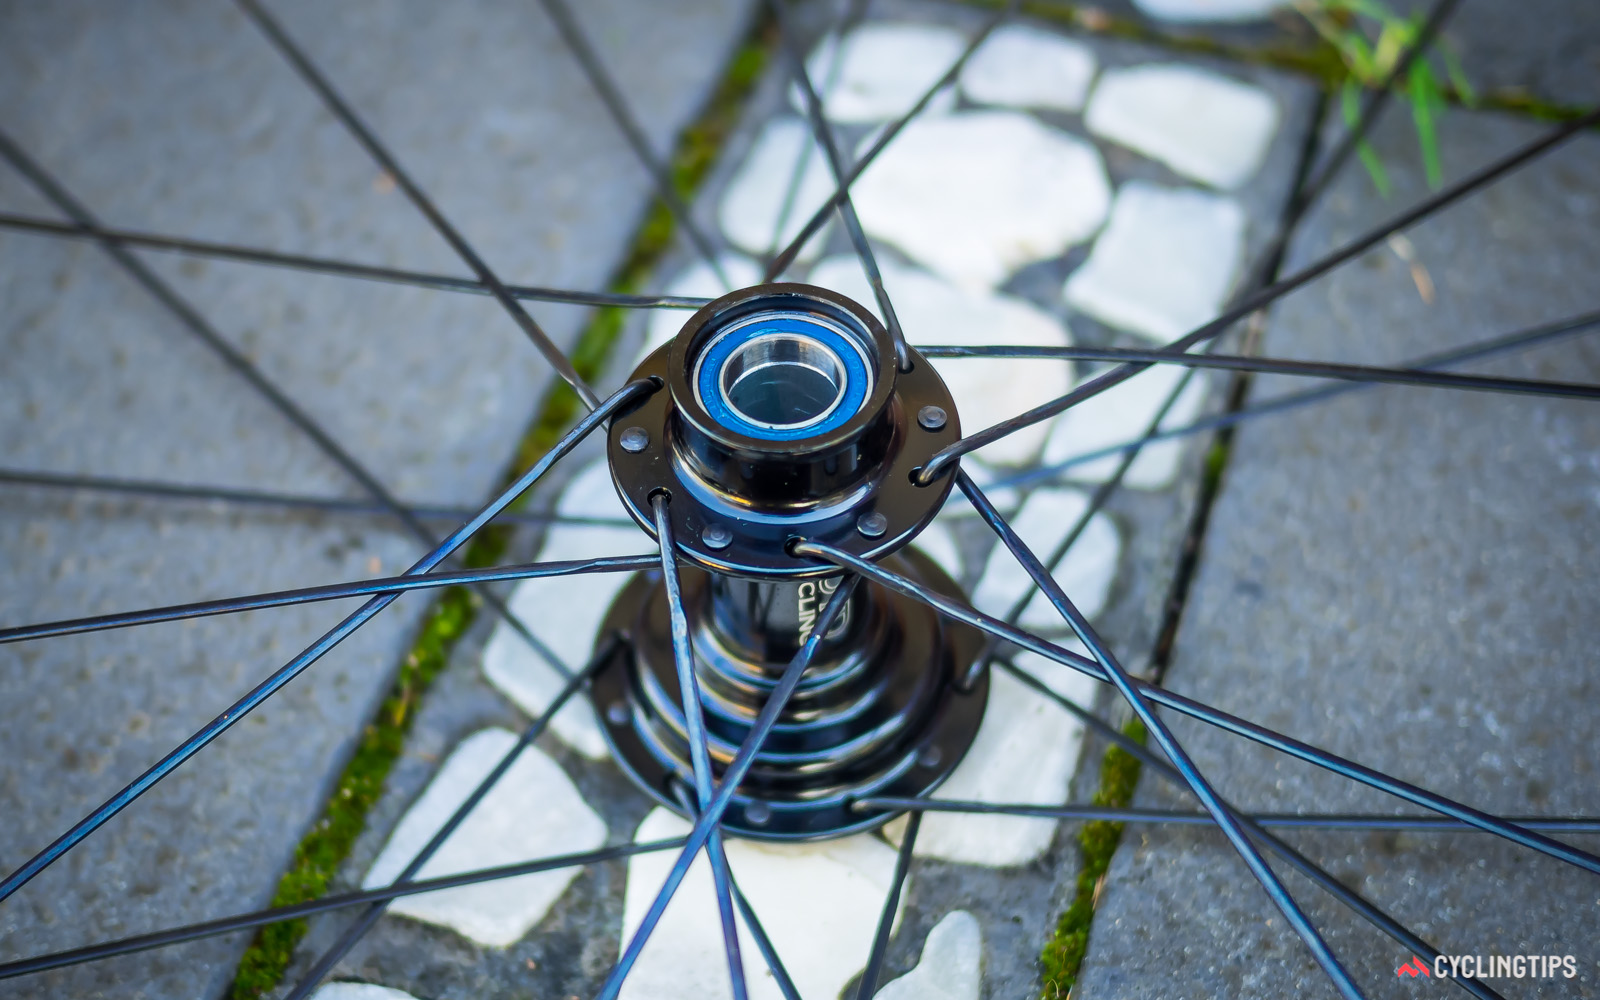 Like the front bearings, the rear bearing on the non-drive side of the hub sits close to the dropout of the frame.